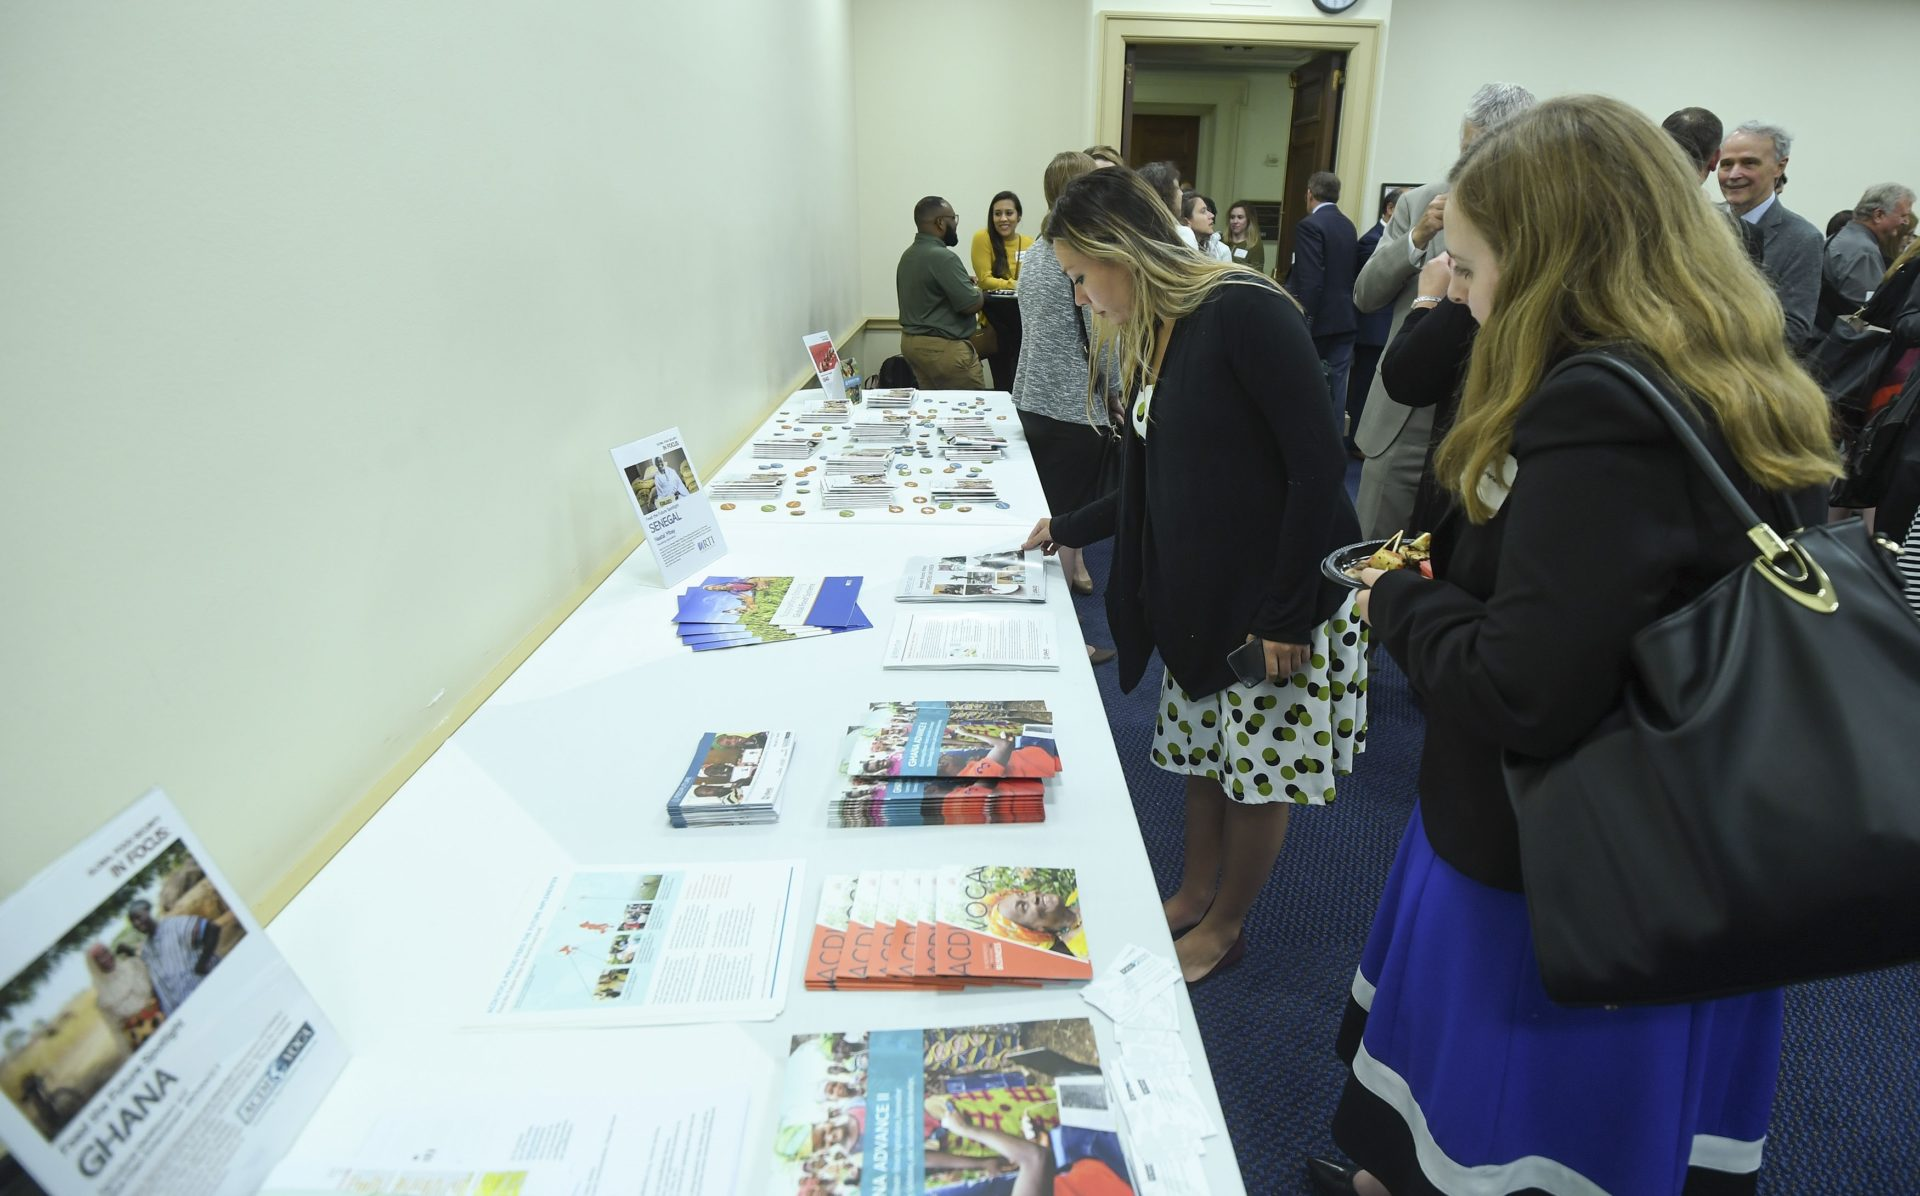 people gather around an information table that includes pamphlets and brochures